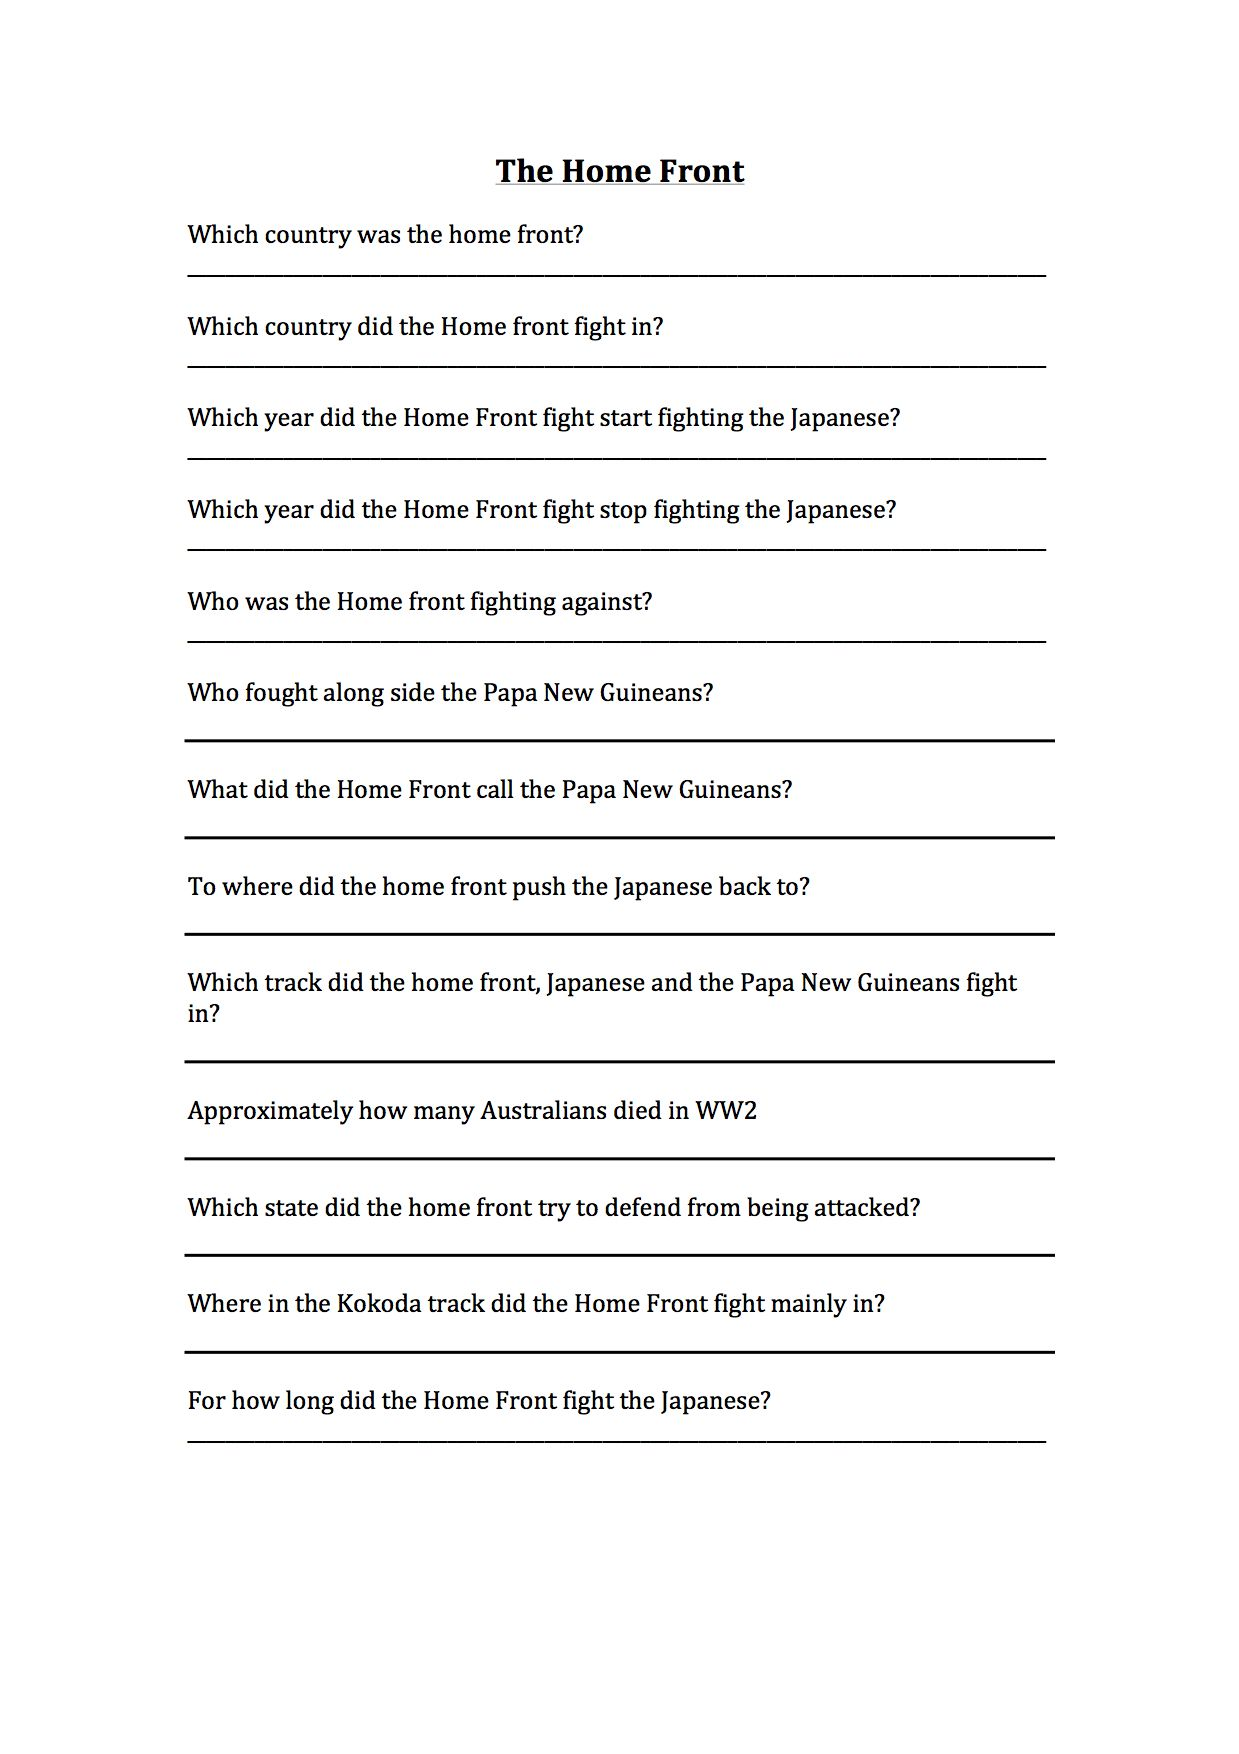 Worksheet About The Homefront